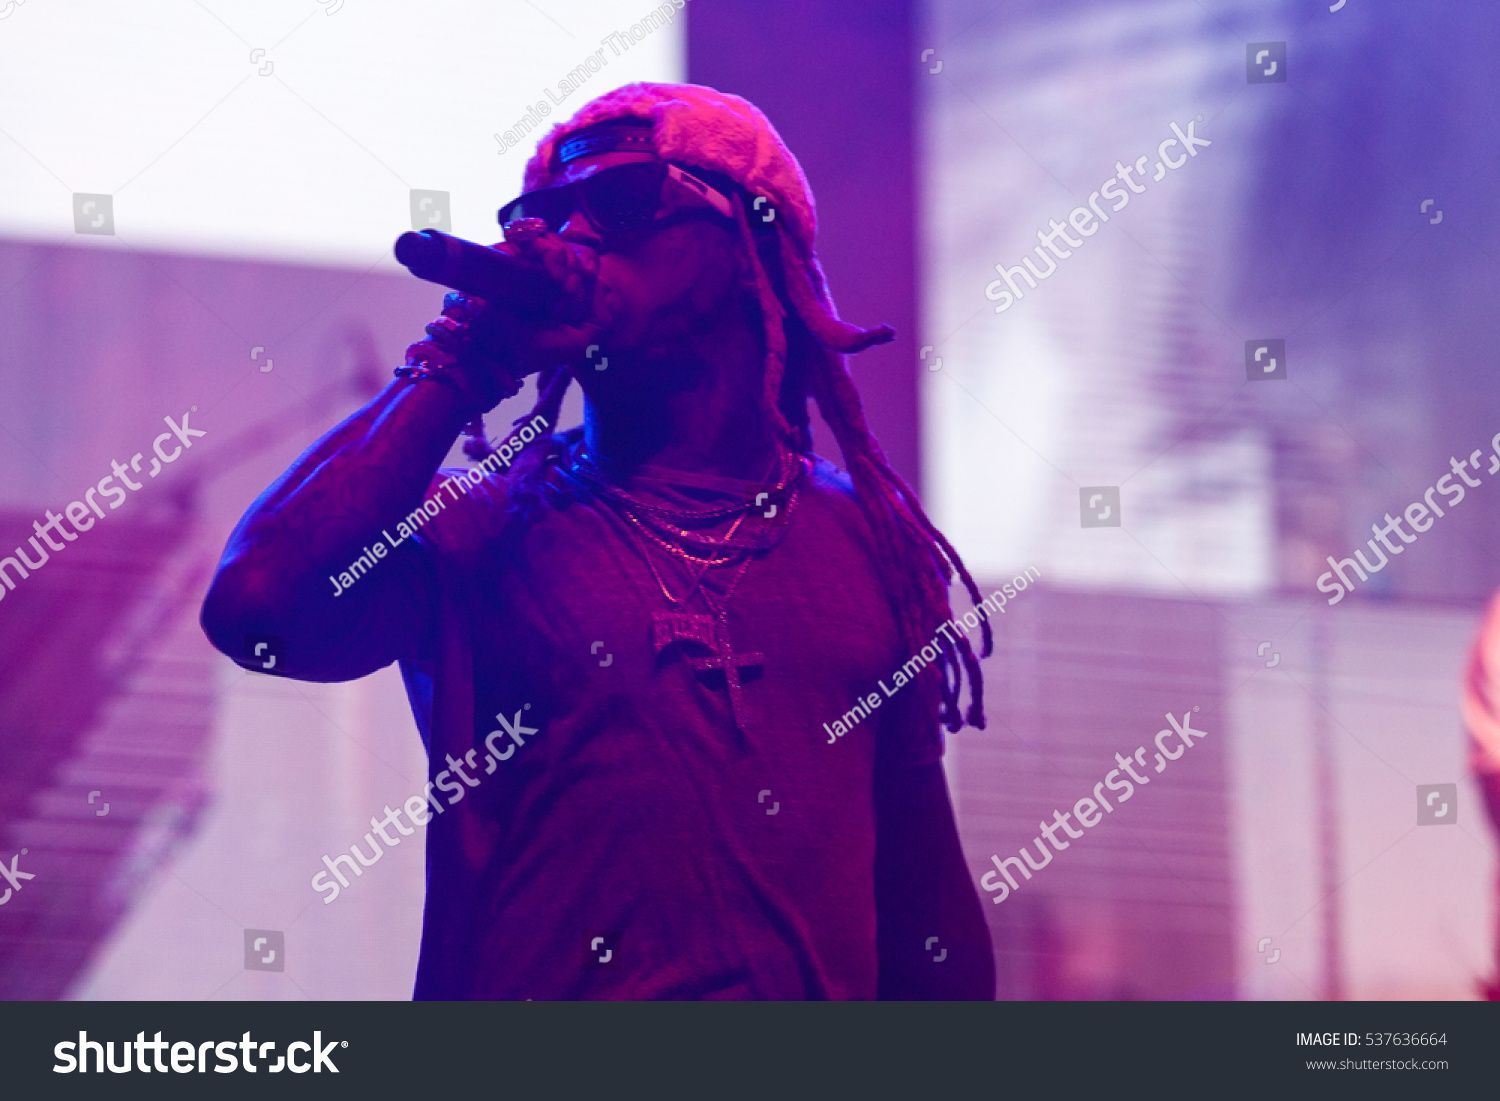 Rapper Lil Wayne attended the 2nd Annual V103 Winterfest Concert on December 10th 2016 at the Philips Arena in Atlanta, Georgia - USA #Ad , #AD, #Annual#Concert#Winterfest#Lil #lilwayne Rapper Lil Wayne attended the 2nd Annual V103 Winterfest Concert on December 10th 2016 at the Philips Arena in Atlanta, Georgia - USA #Ad , #AD, #Annual#Concert#Winterfest#Lil #lilwayne